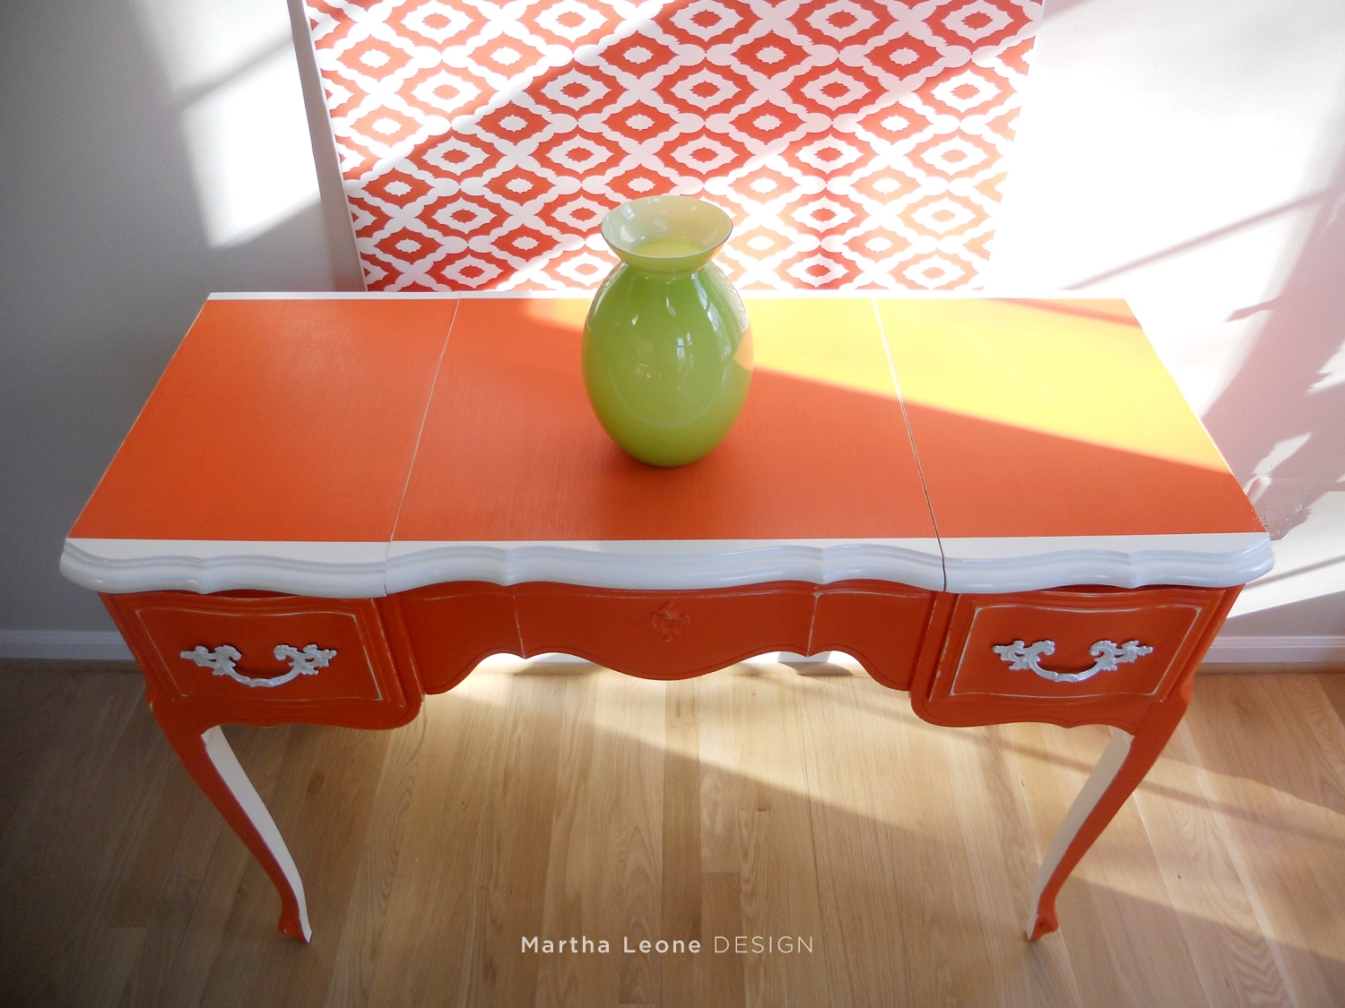 Orange9 at MarthaLeoneDesign